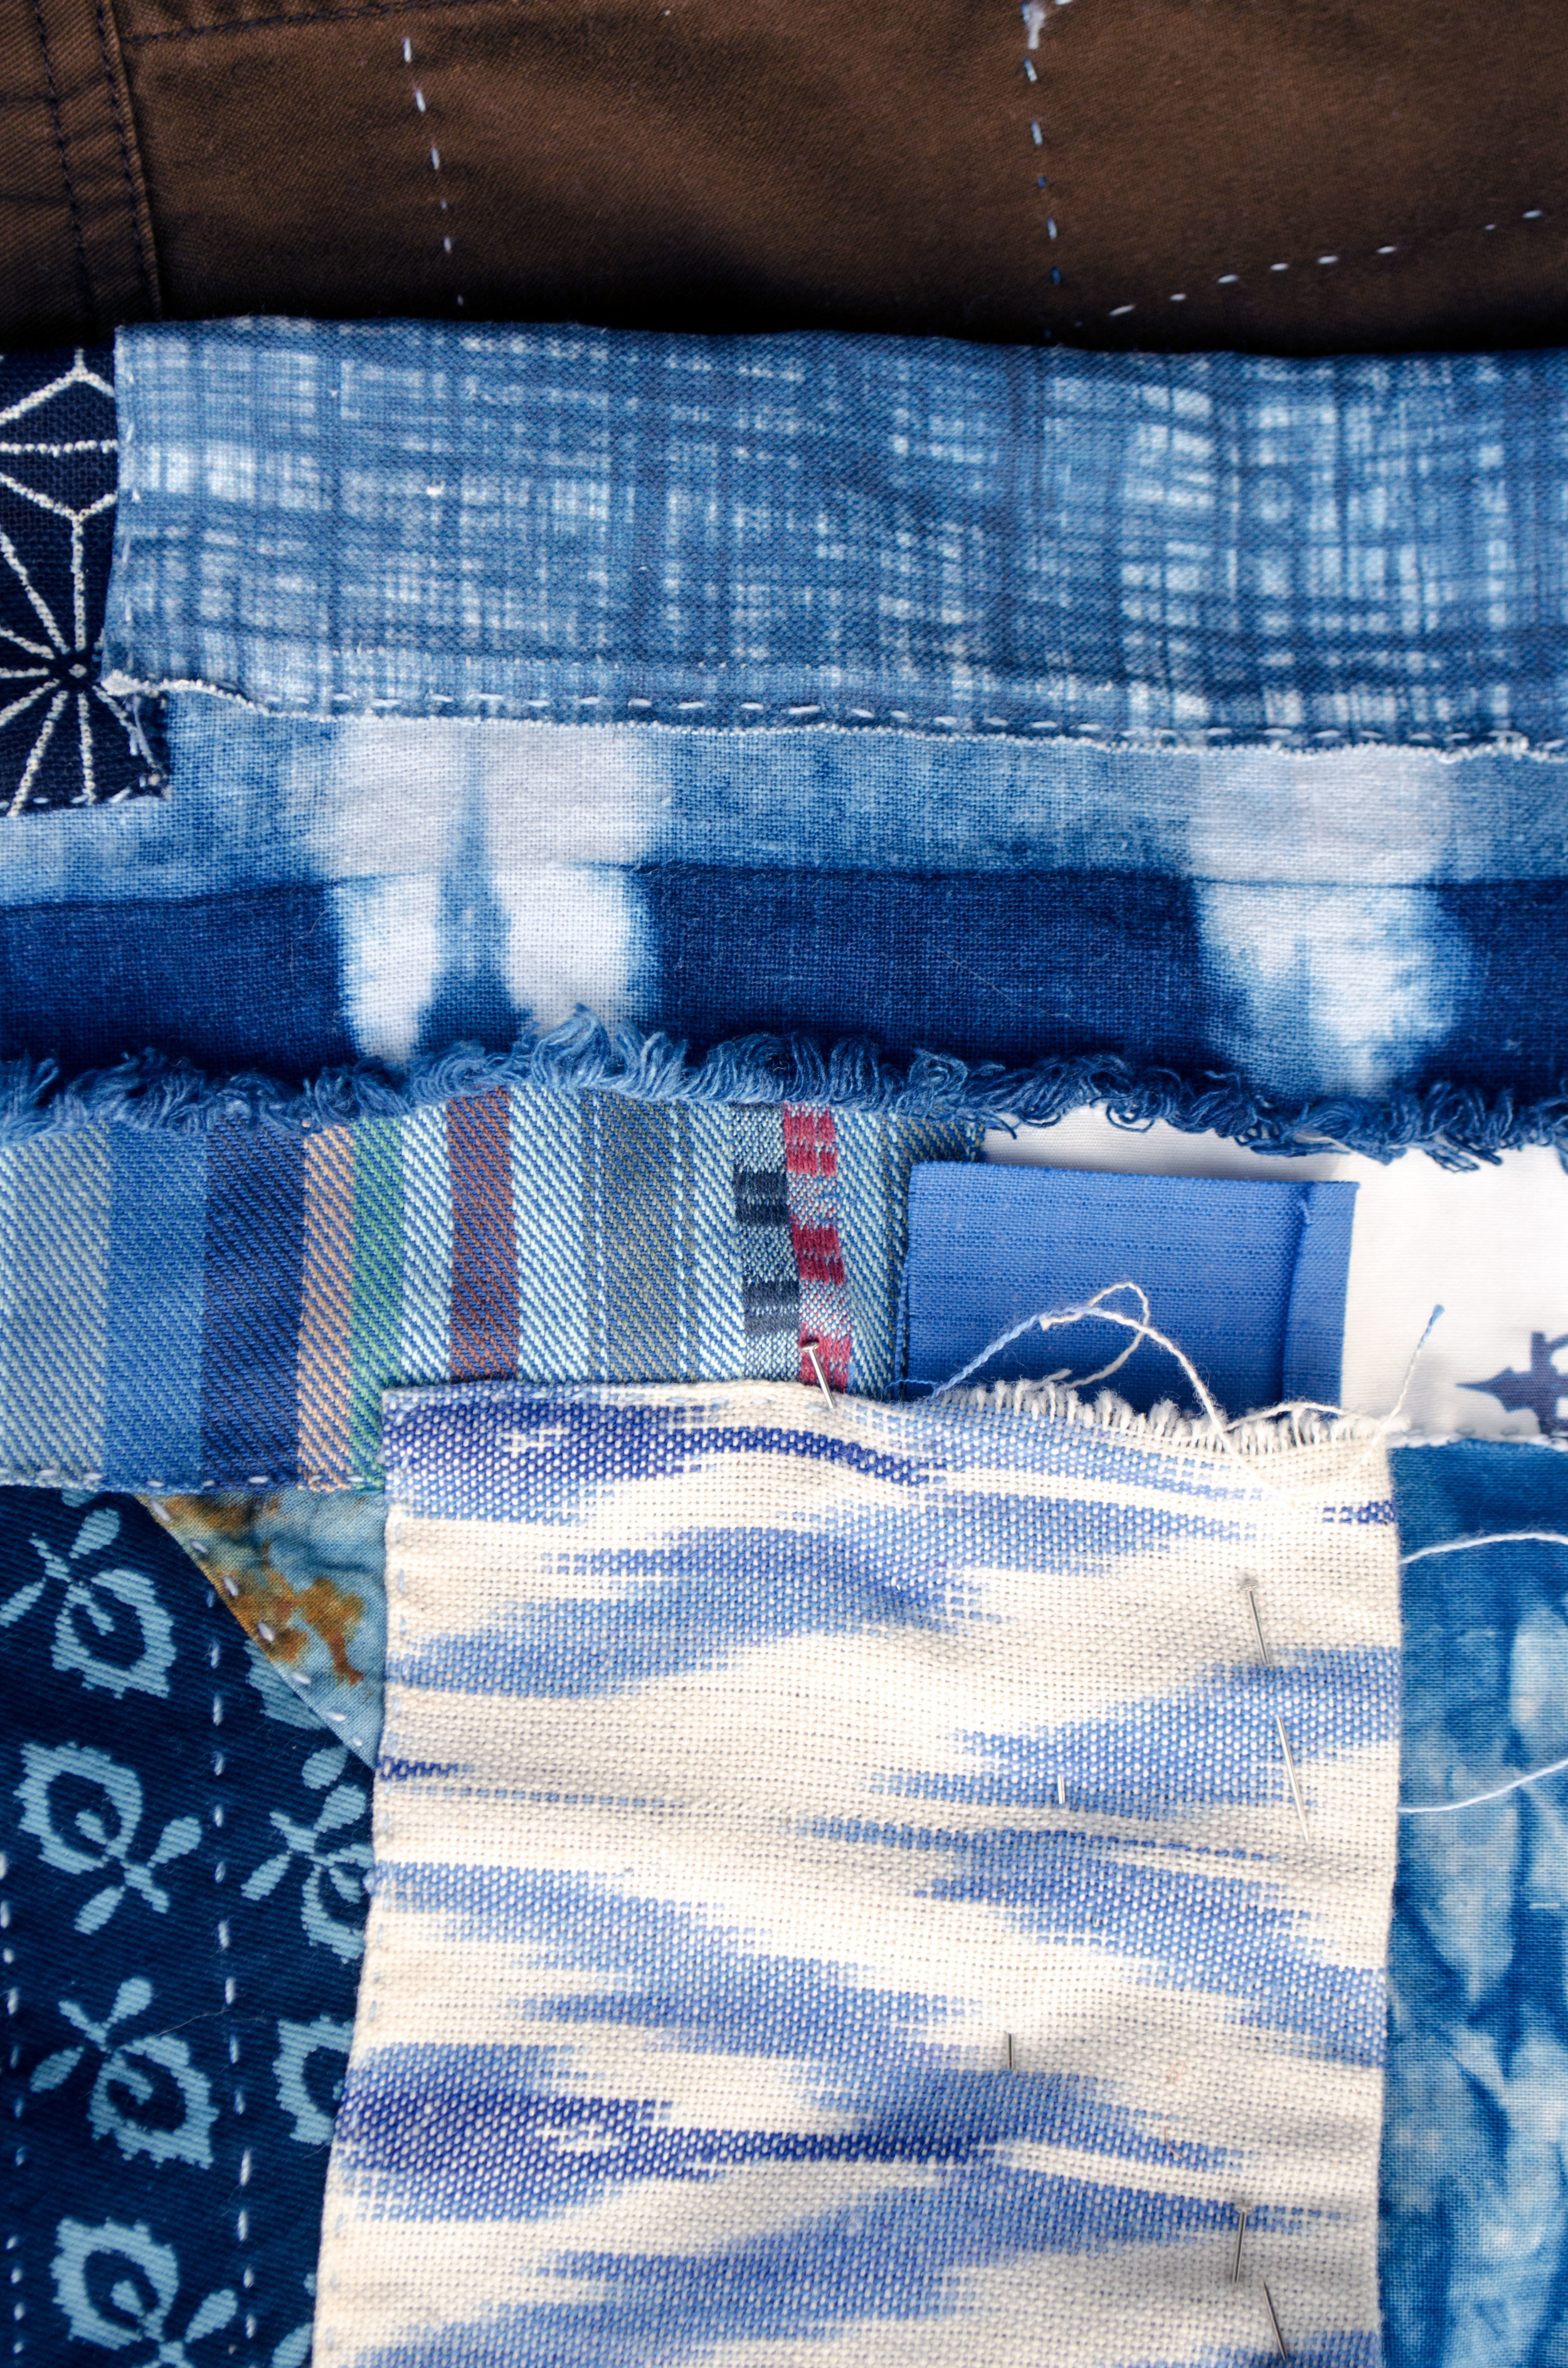 Block printed cotton, ikats, and shibori fabrics patched in the boro style